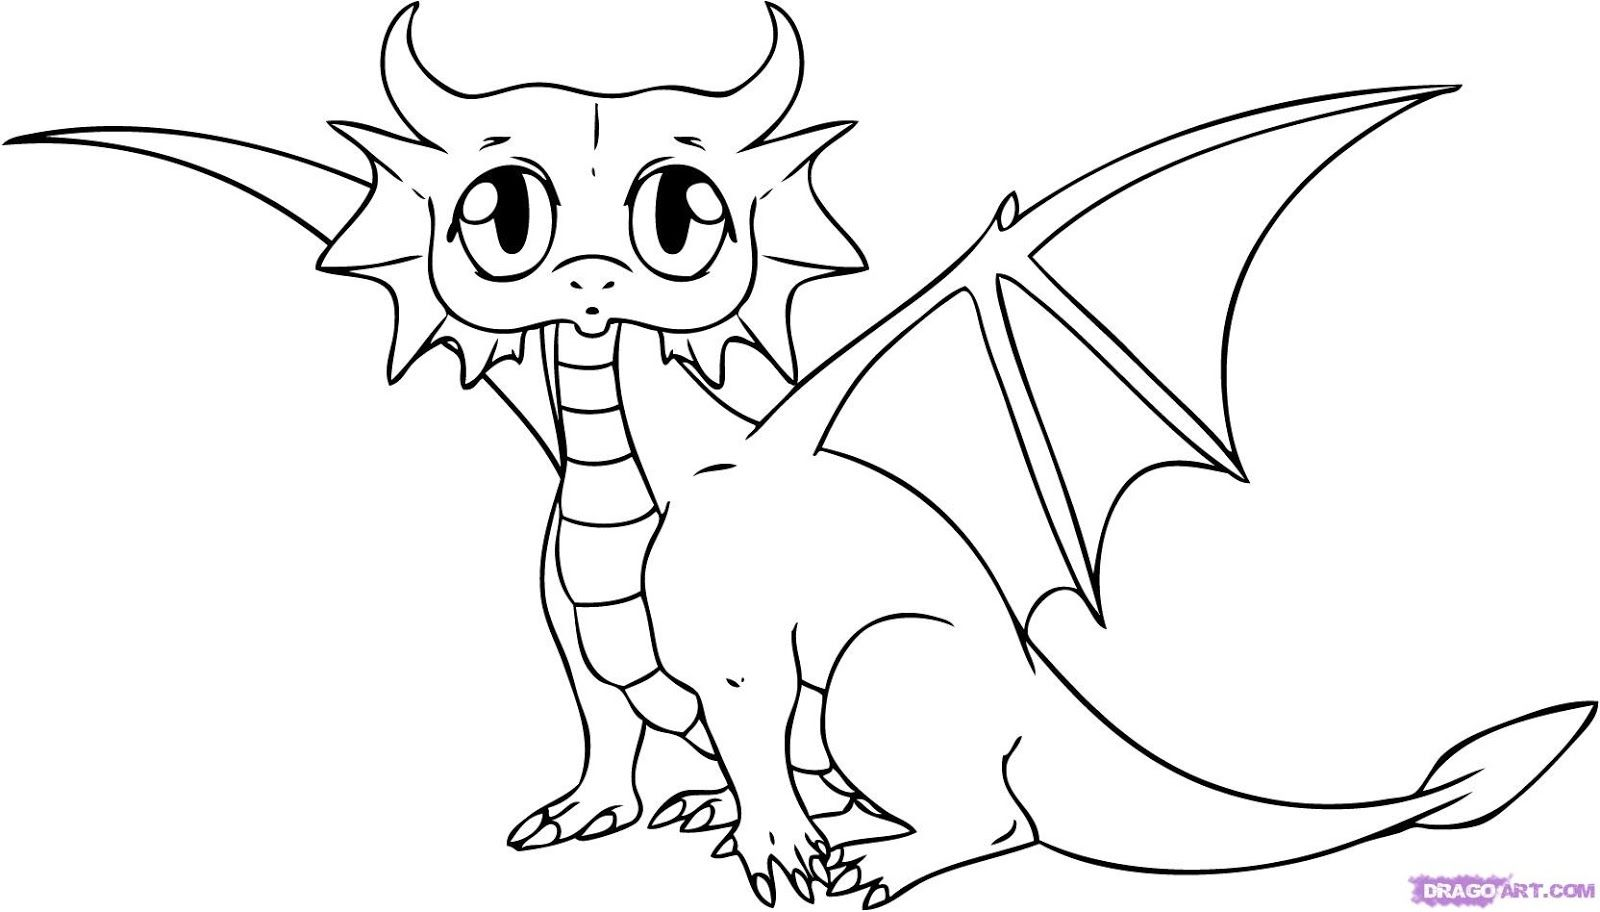 Drawing Lines With Ncurses : Images for gt easy dragon drawings kids bumba